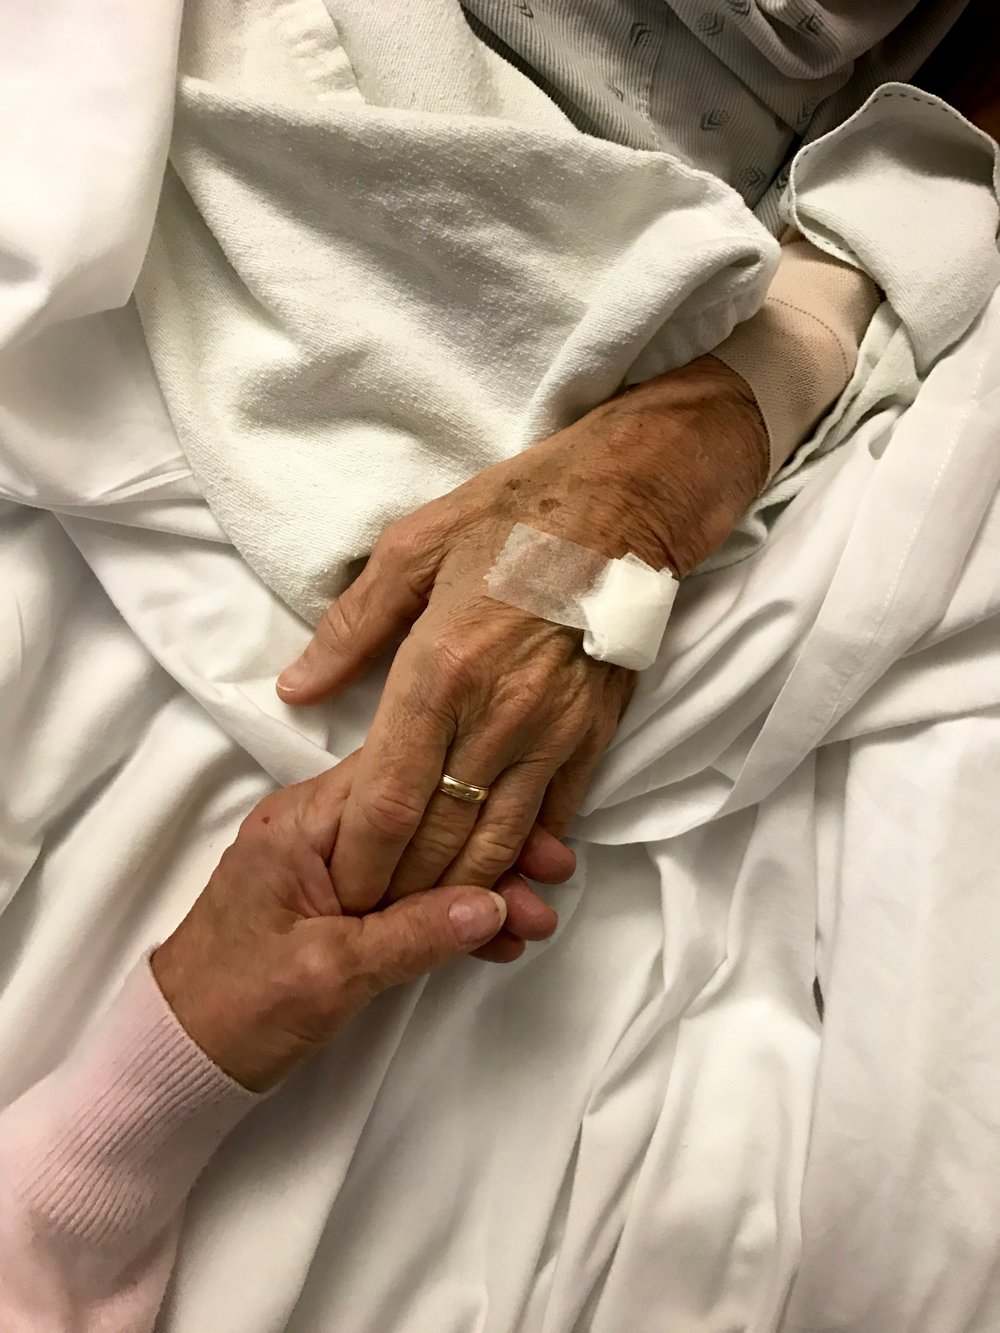 60 years of marriage... - Grammy holds her husband's hand the day before his passing.